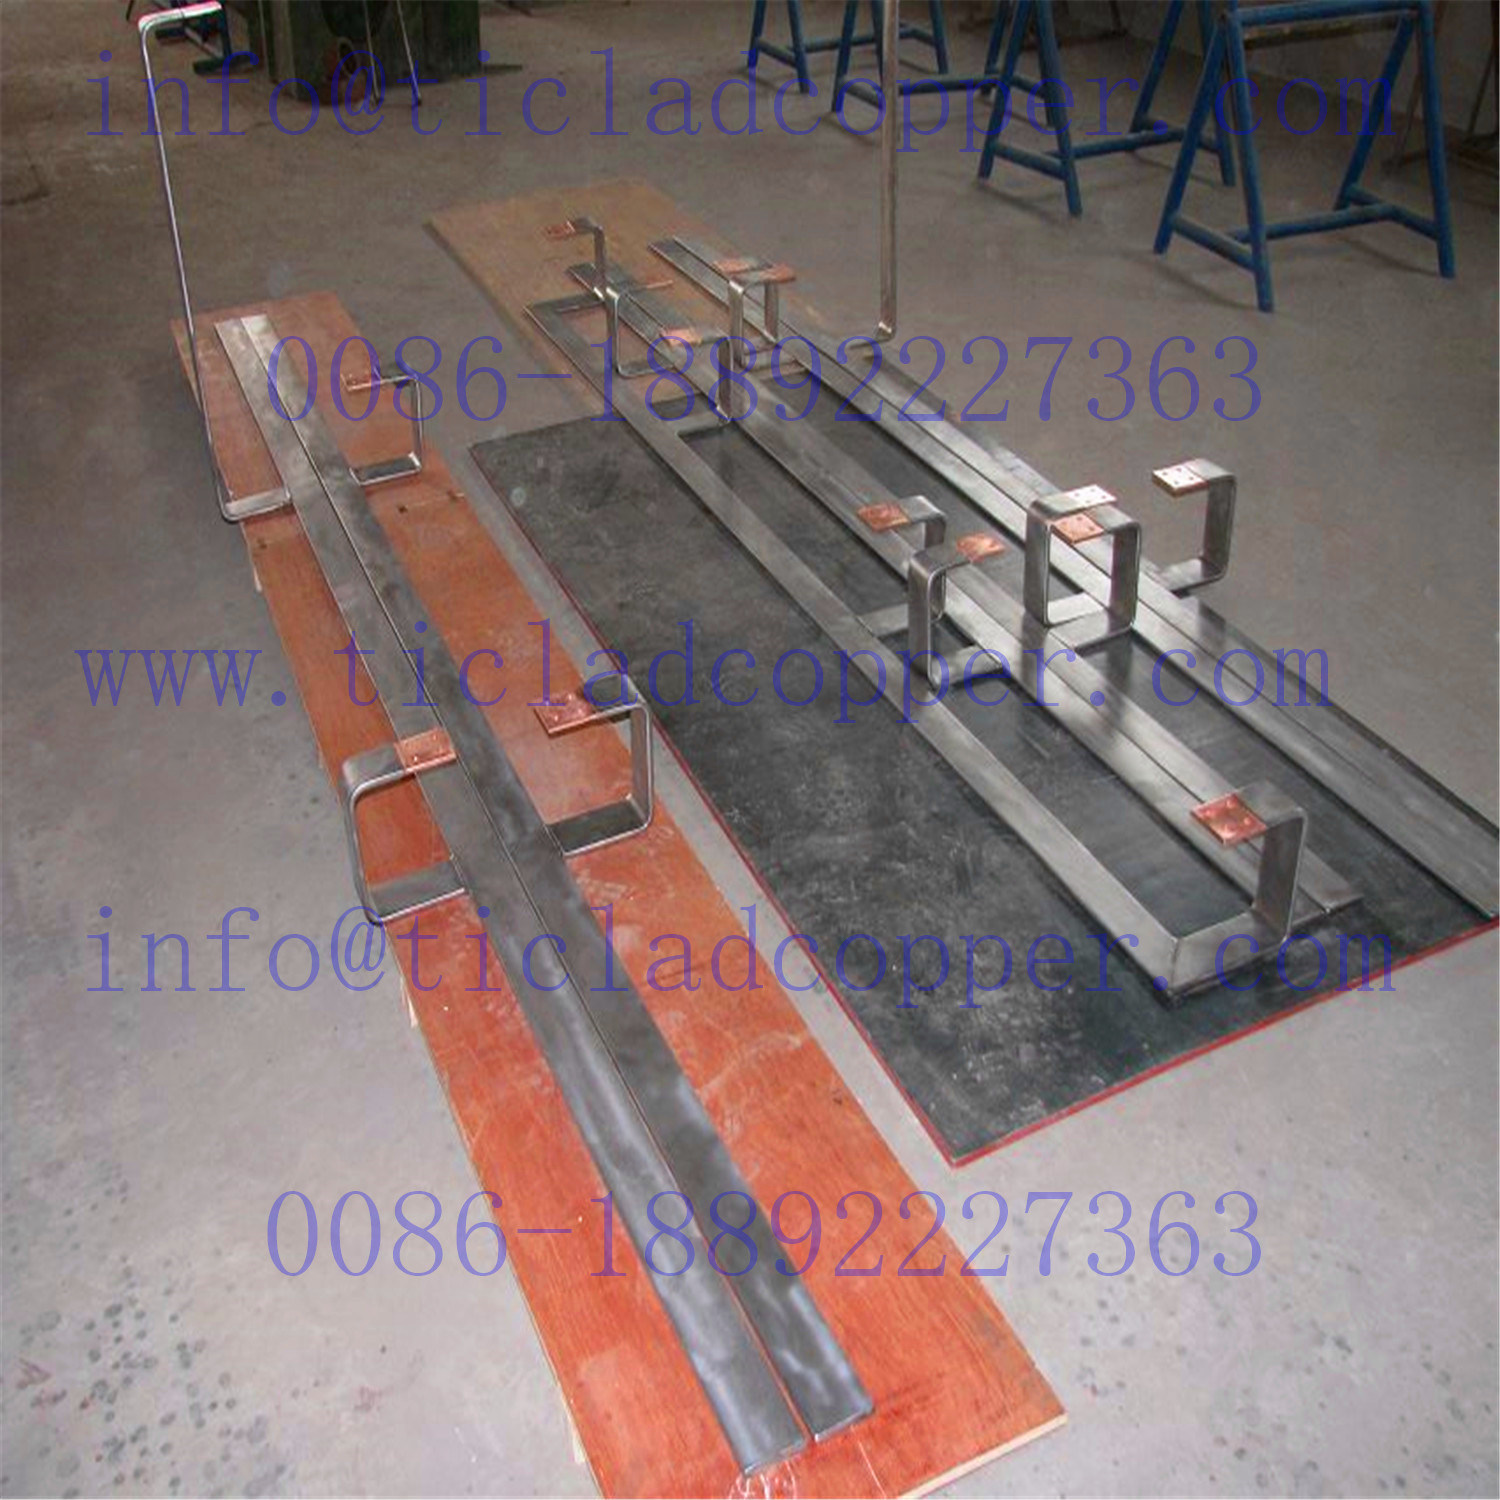 Precut Steel Clad Copper Hanger Bar Electrode for Surface Treatment pictures & photos